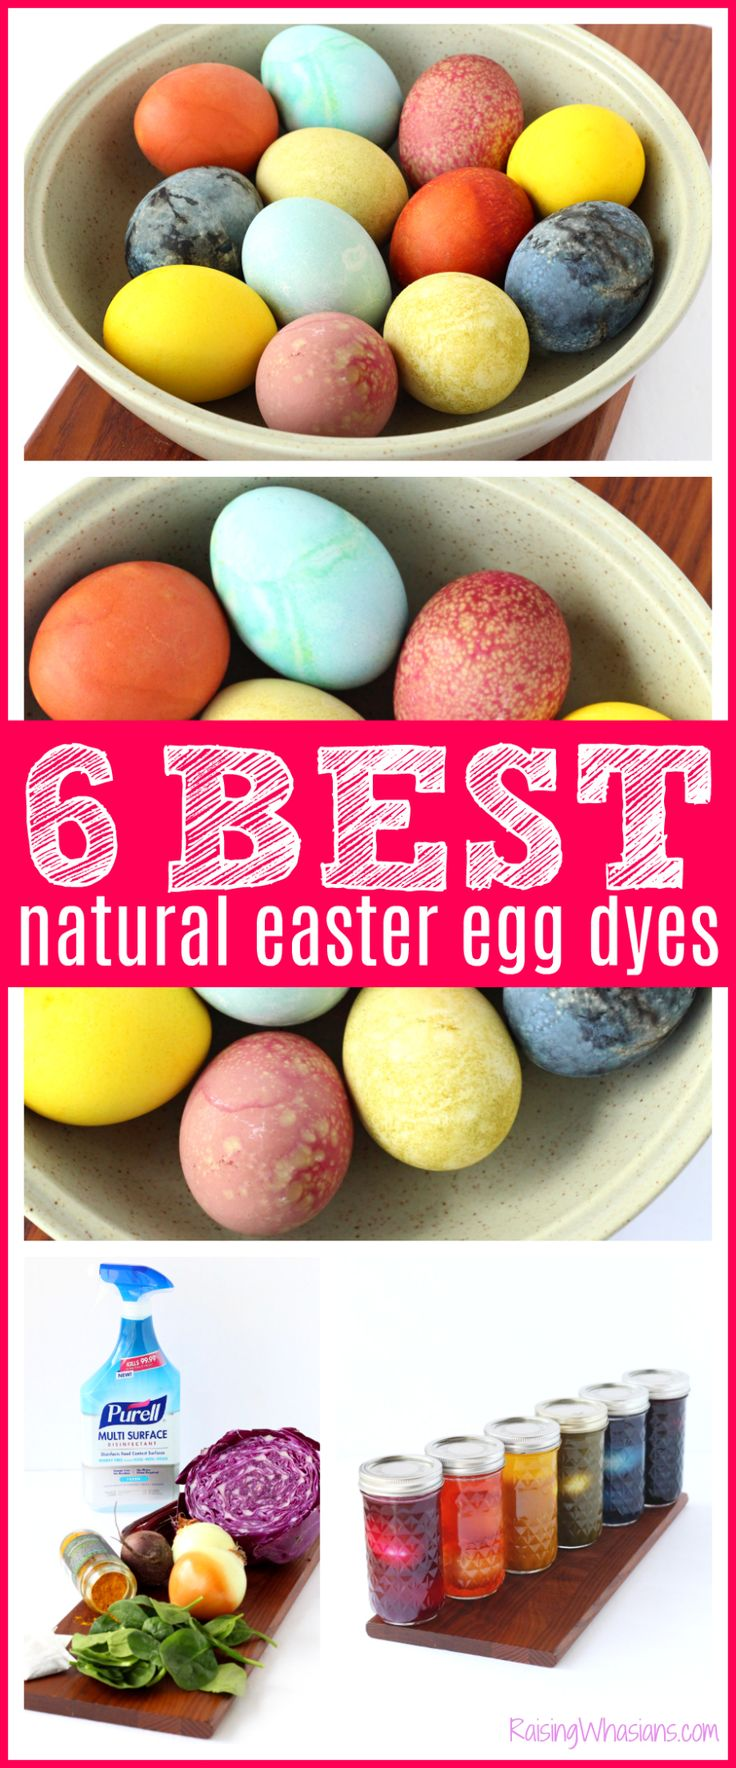 6 EASY Natural Easter Egg Dyes for the Most Vibrant Colors | Best at home dyes for your Easter eggs using everyday home items - Raising Whasians via @raisingwhasians